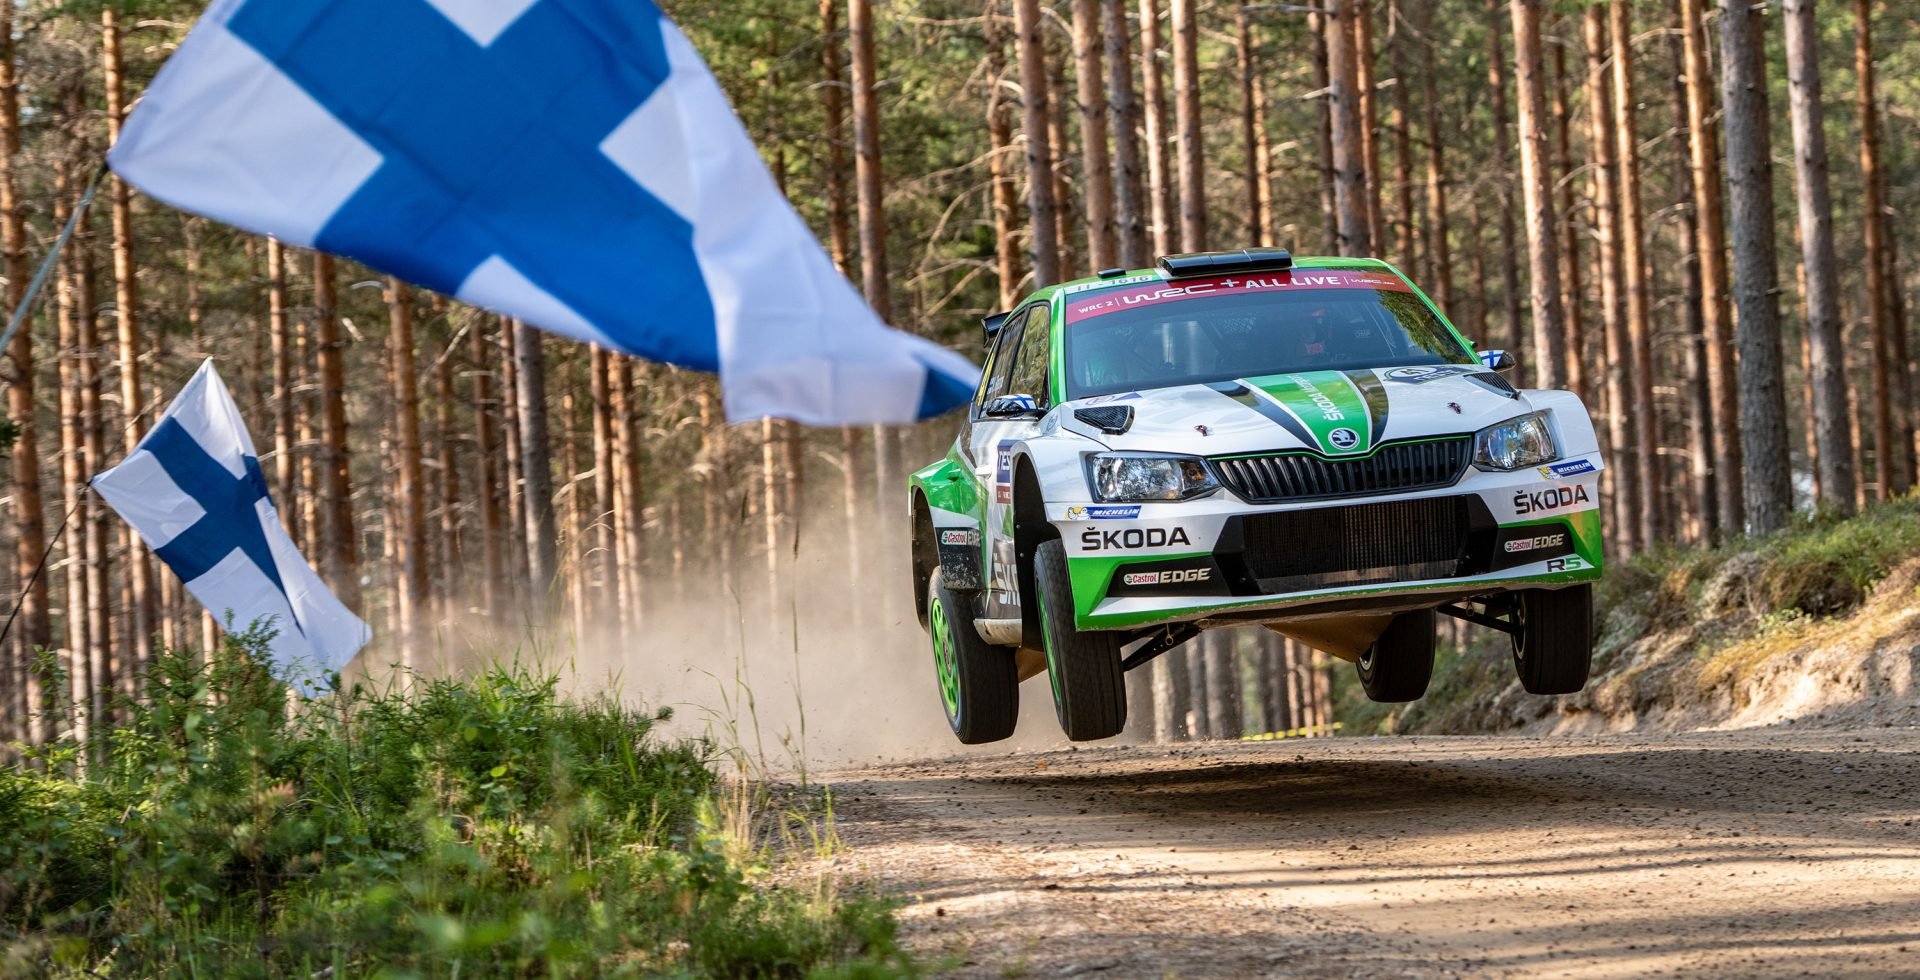 Rally Finland: The Fastest Rally Is About To Begin